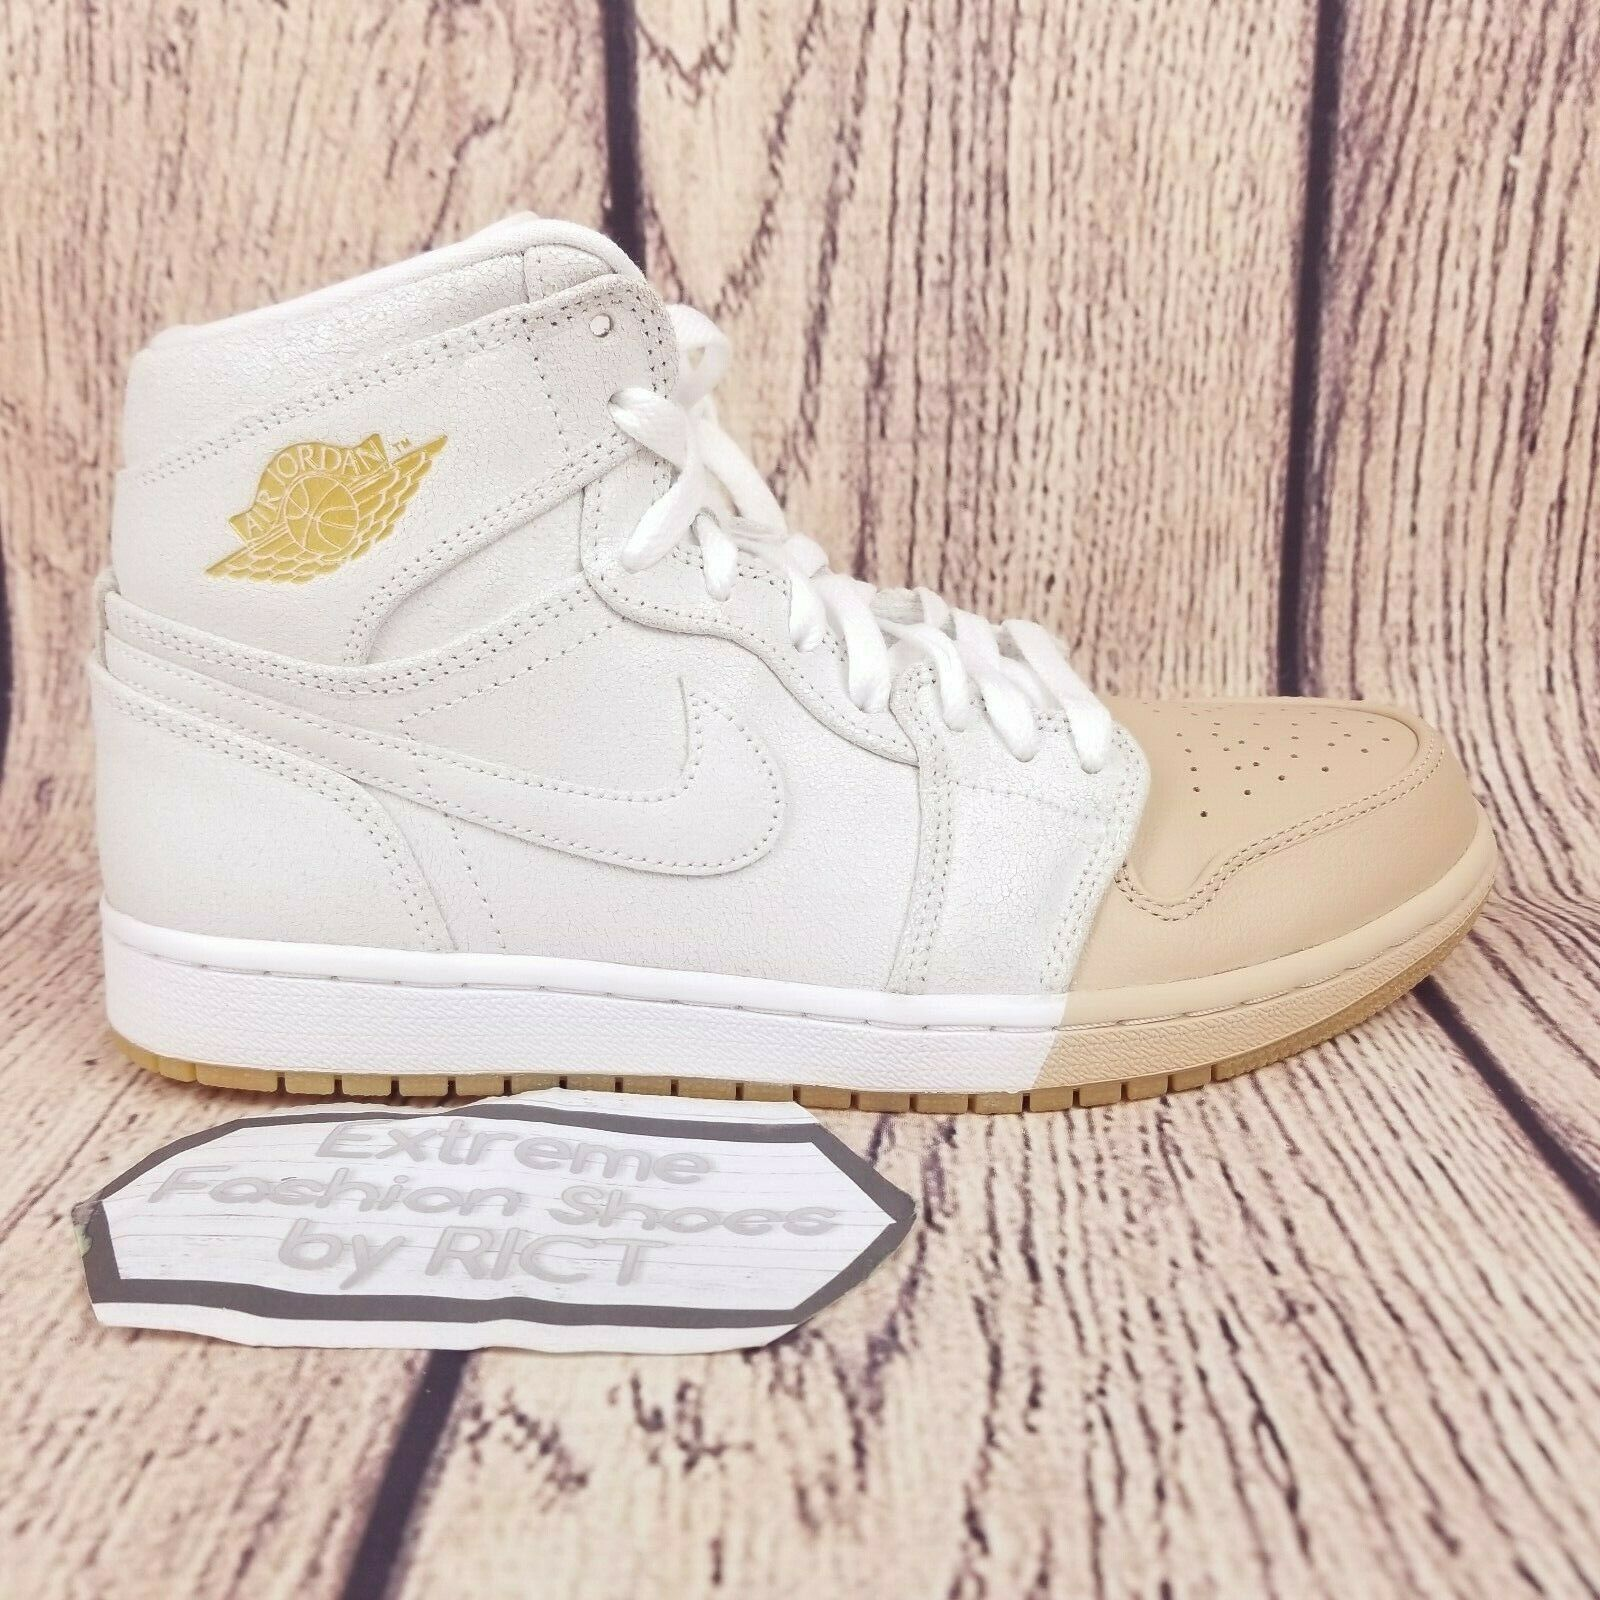 Womens Air Jordan 1 Retro Hi Premium shoes Size 9 White Metallic gold AH7389 107